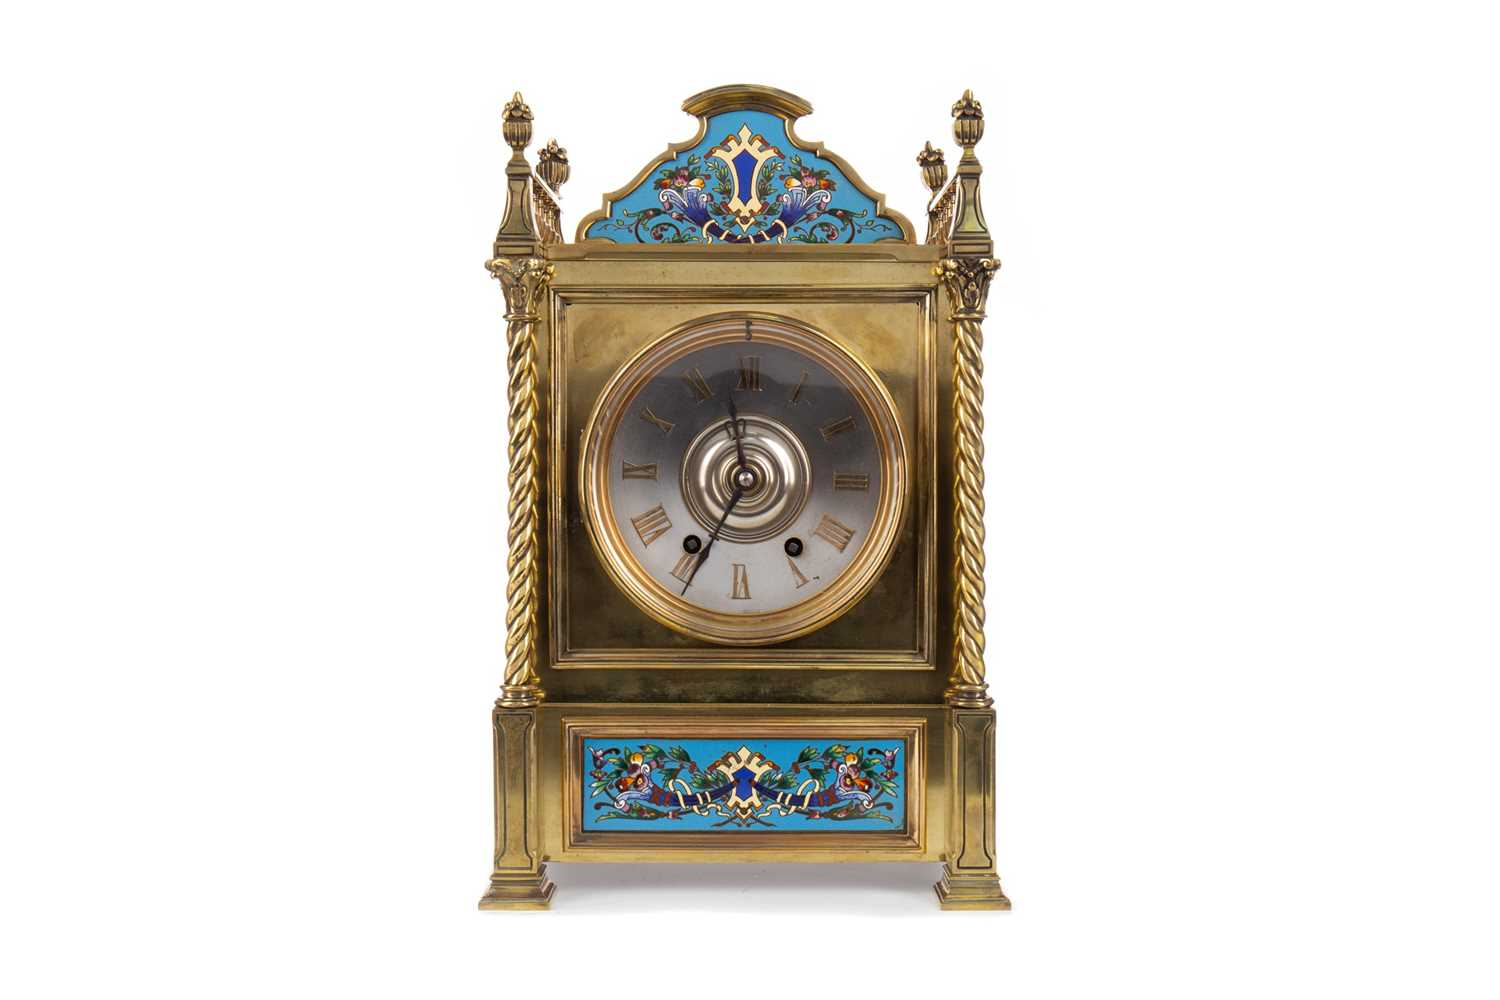 Lot 1125 - A LATE 19TH CENTURY BRASS AND CLOISONNÉ MANTEL CLOCK